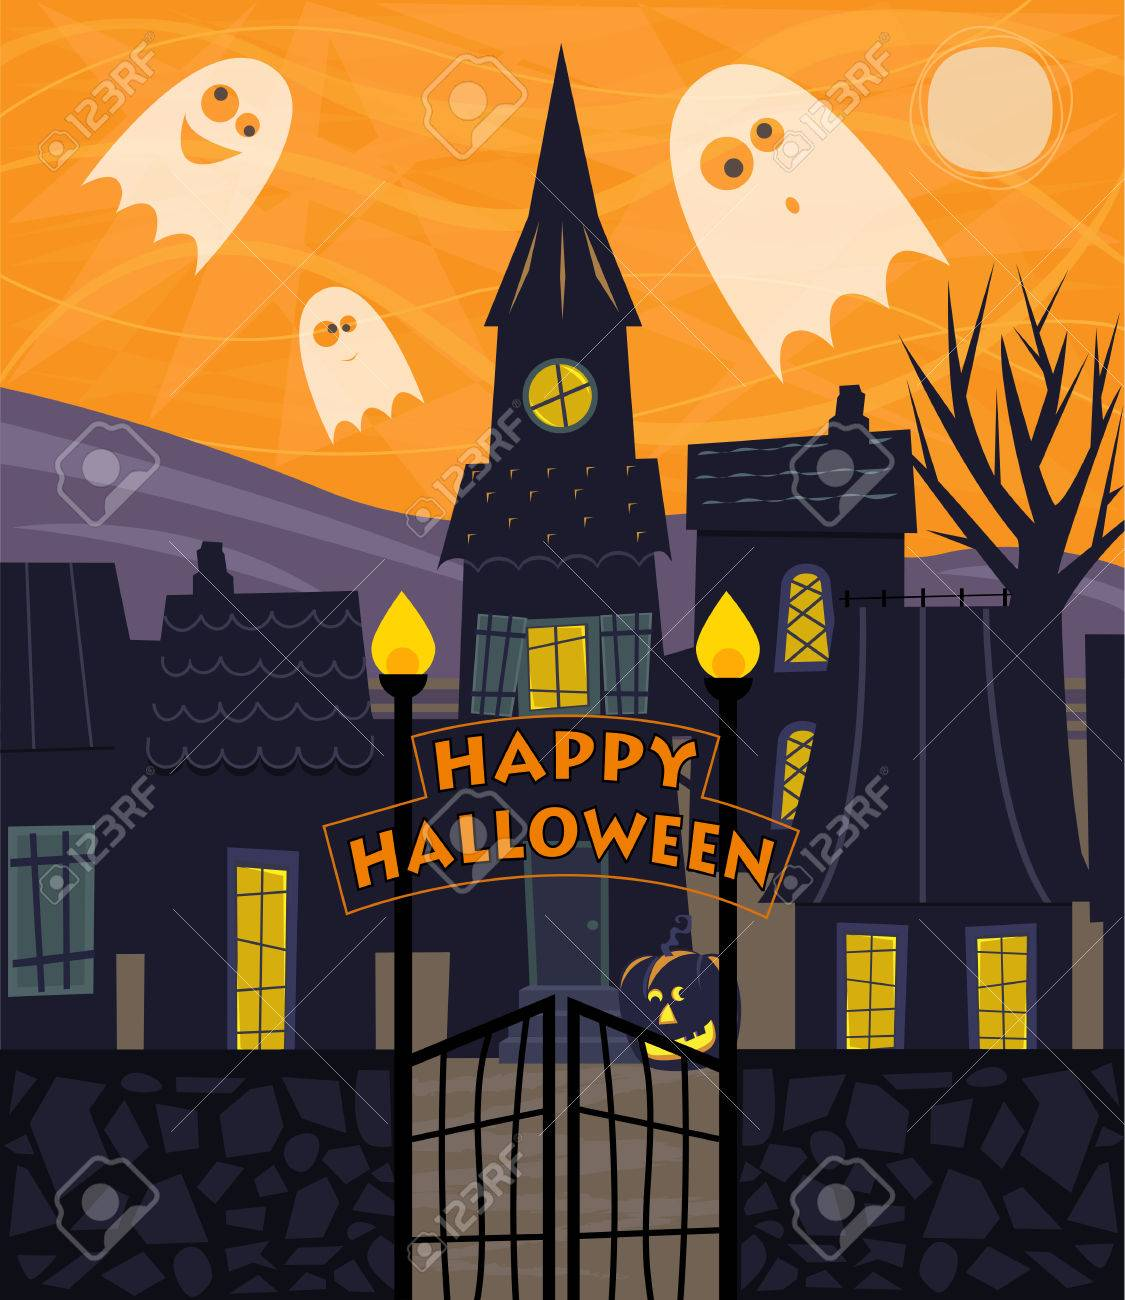 halloween greeting card of a silhouetted town with happy halloween sign and cute ghosts stock